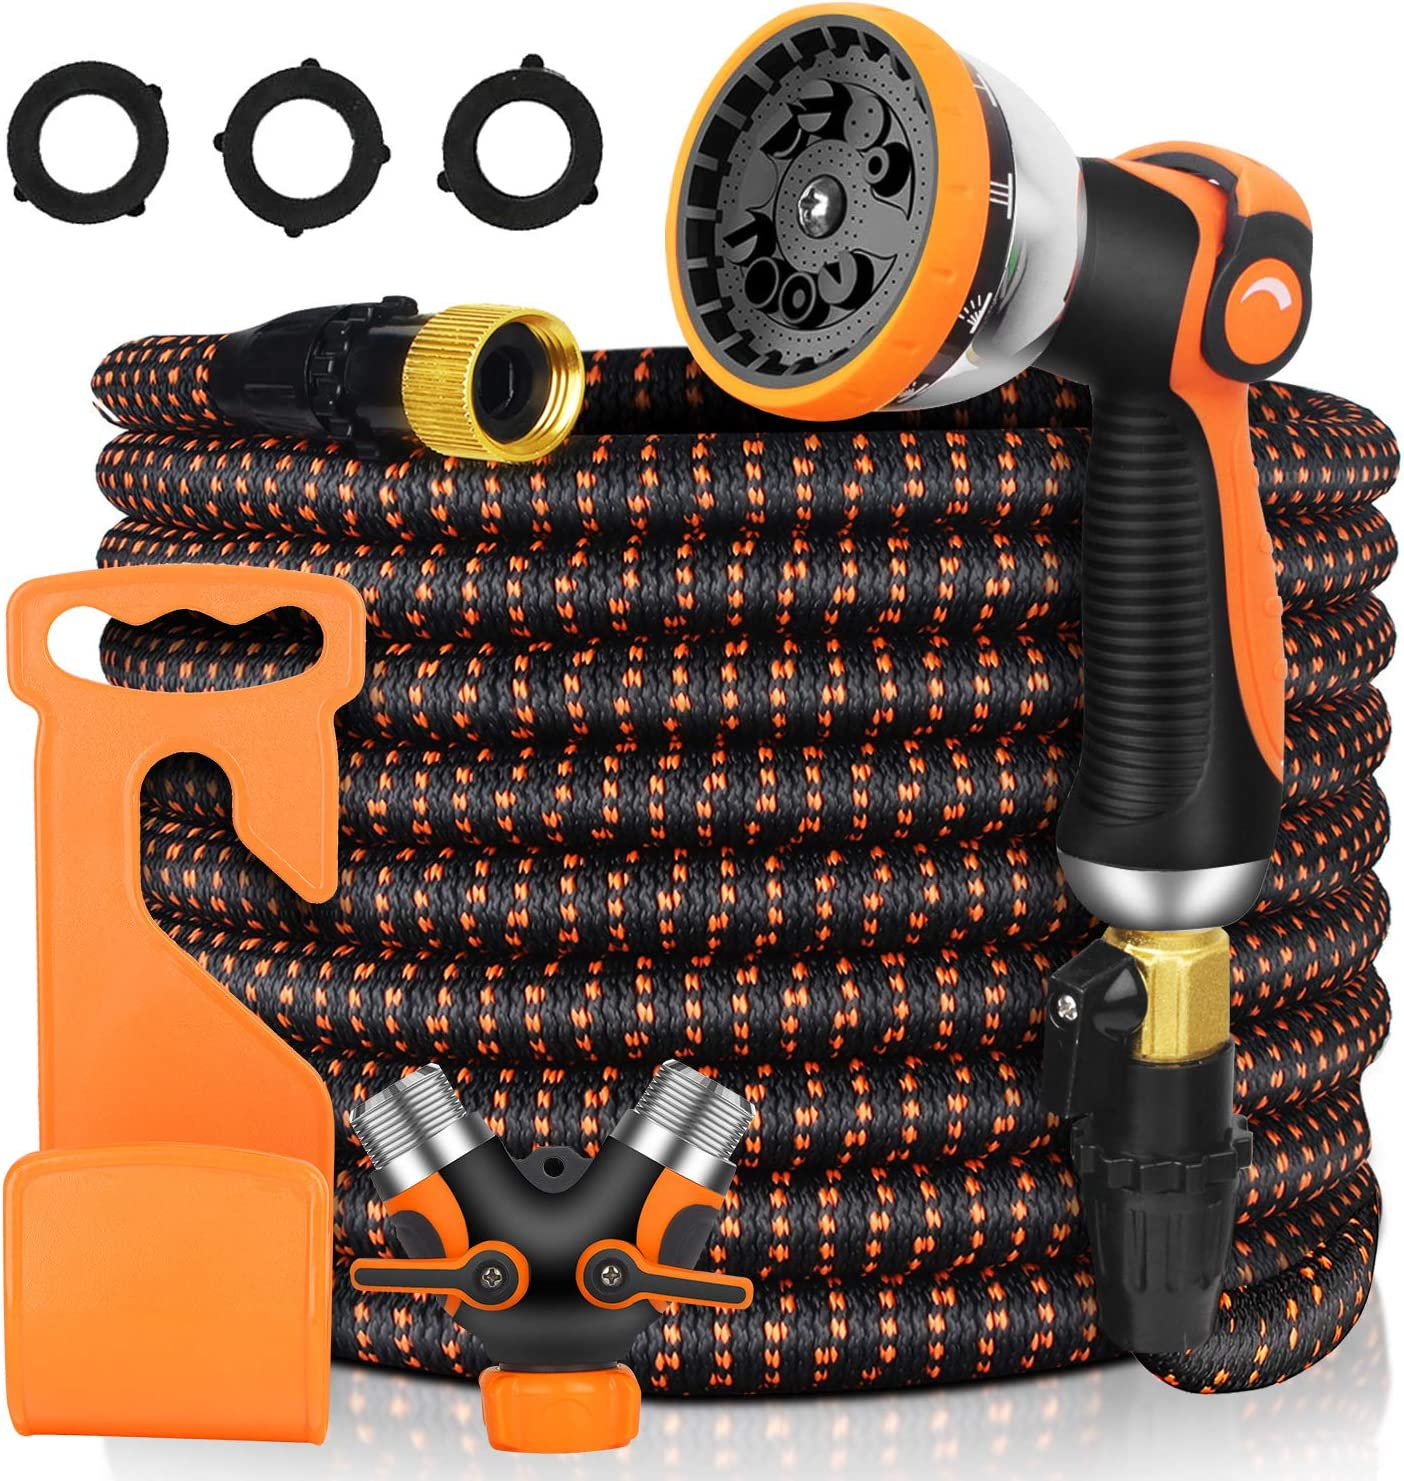 Garden Hose Expandable 100ft, Upgraded Garden Water Hose with Exquisite High-Density Fabric for Crack, Leak Resistant & 10 High-Pressure Spray Patterns for Watering Garden, Cleaning Car, Washing Pet